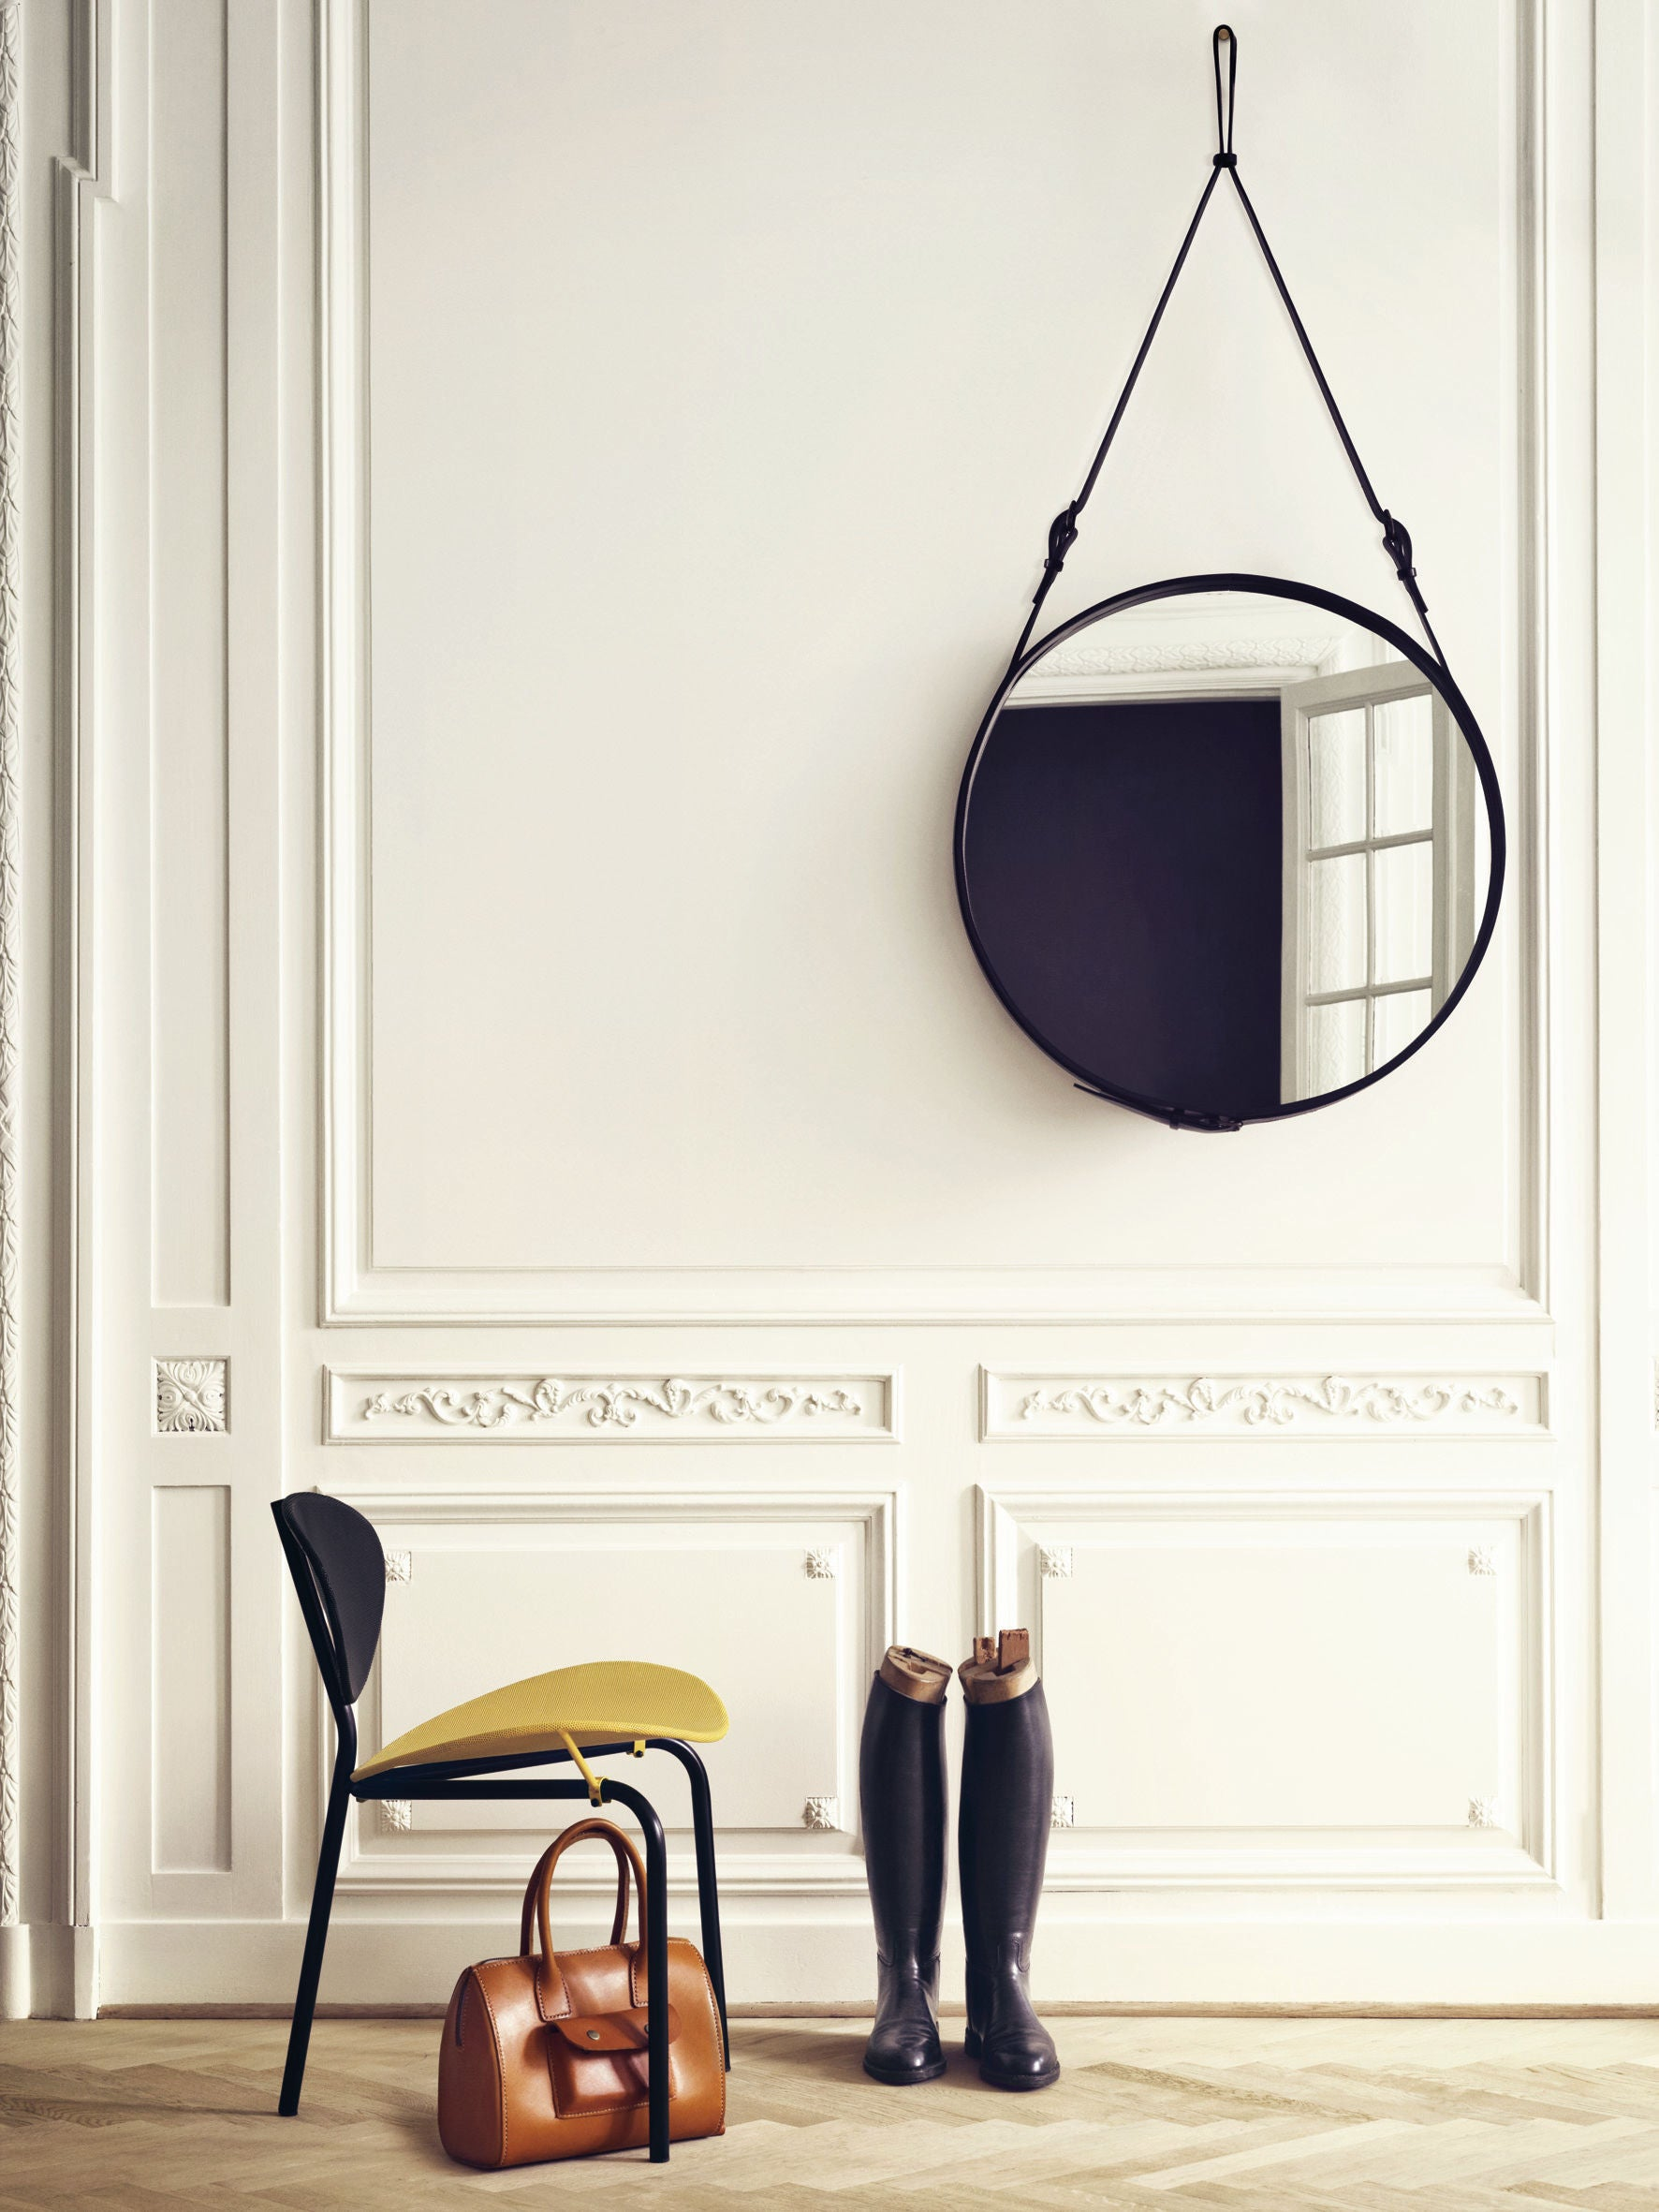 Nagasaki Dining Chair - Midnight Black, Midnight Black top fra GUBI